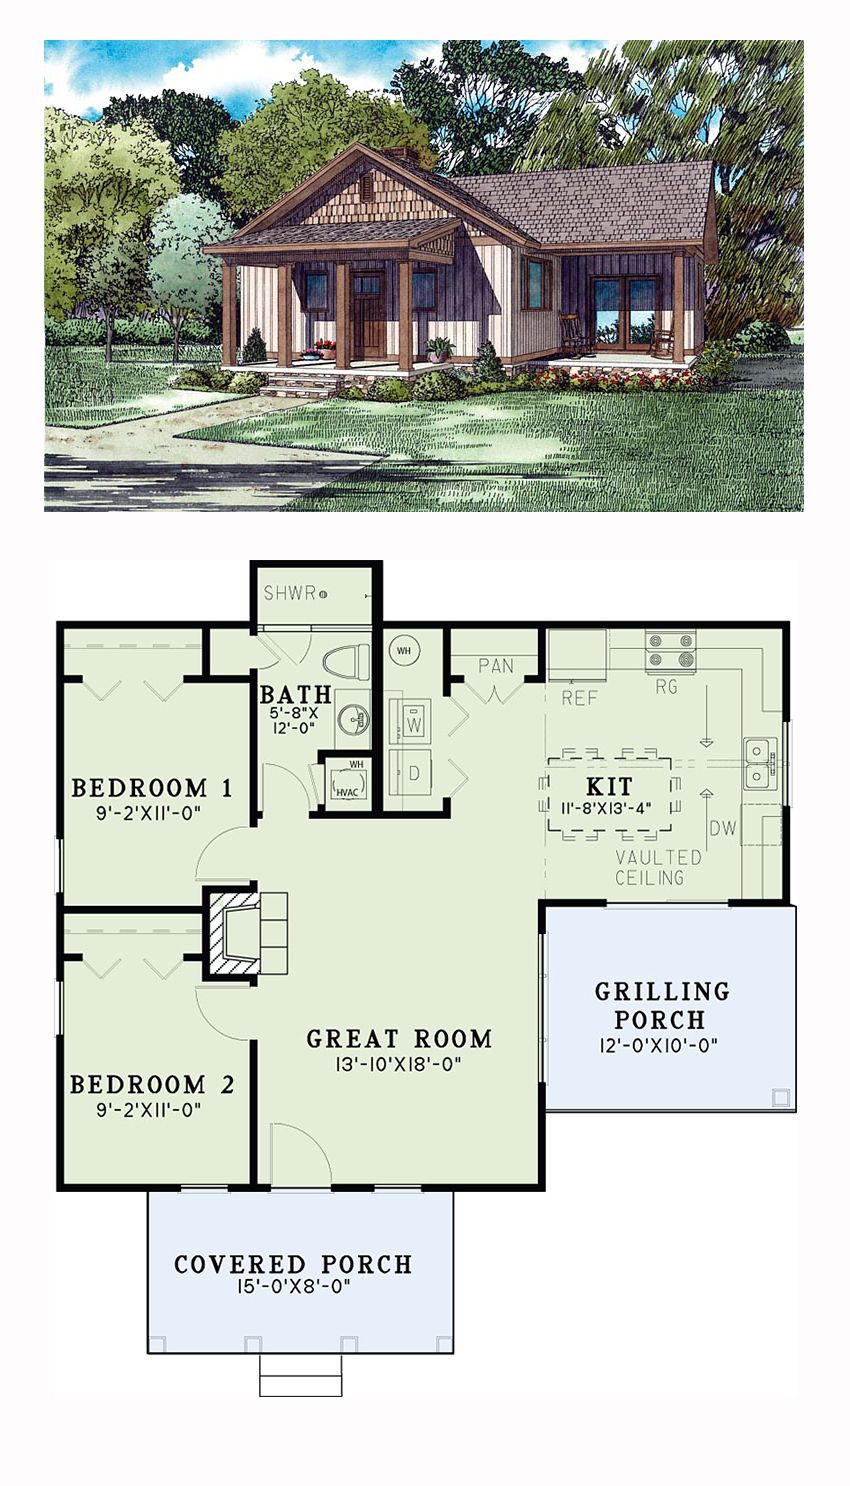 Craftsman Style House Plan 82346 With 2 Bed 1 Bath Craftsman Style House Plans New House Plans House Plans